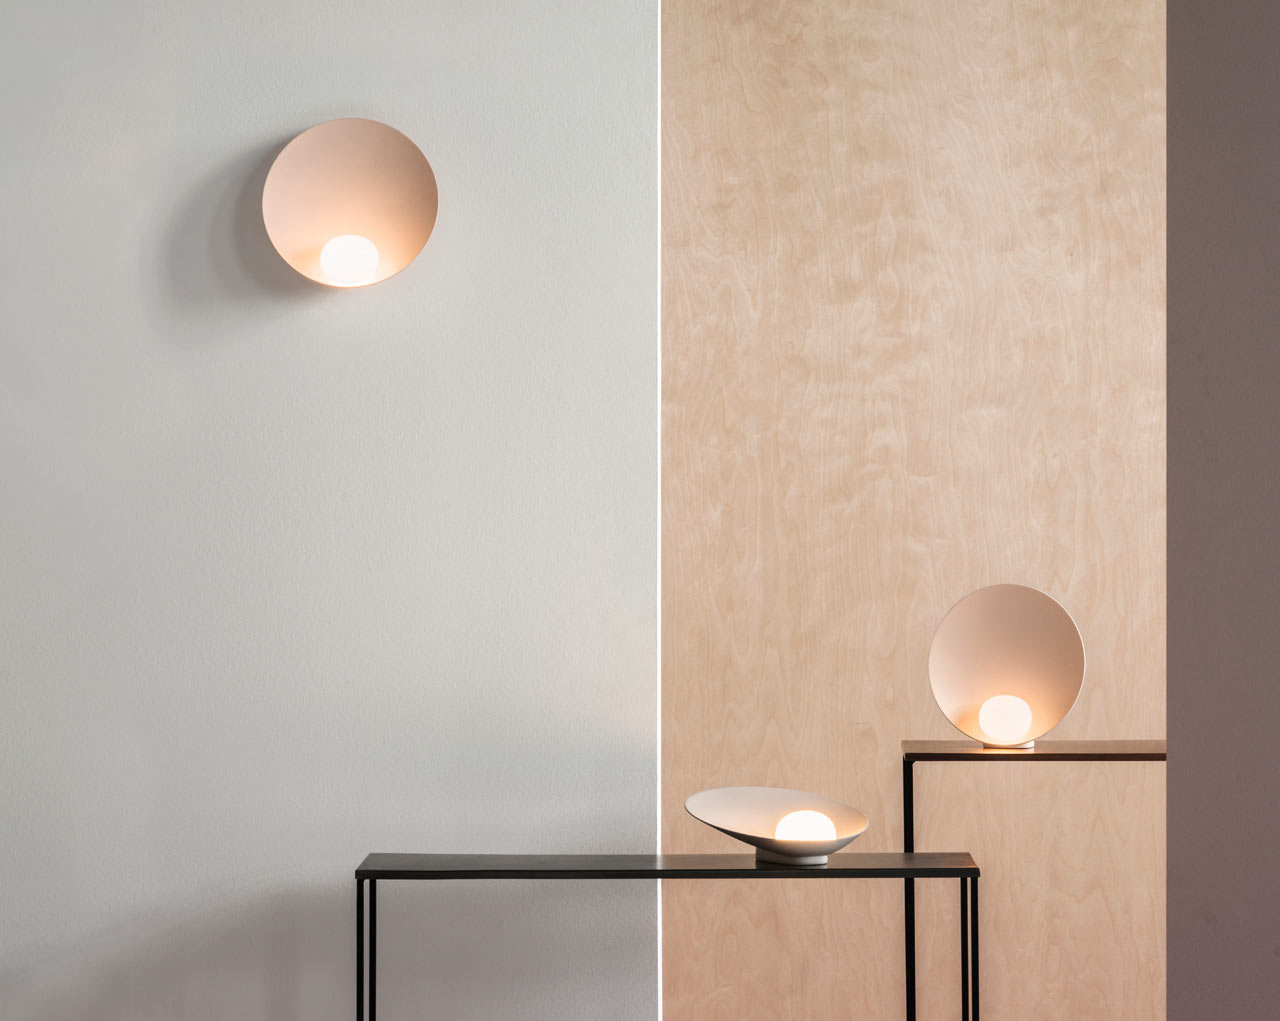 Musa Lighting Collection by Note Design Studio for Vibia ... & Musa Lighting Collection by Note Design Studio for Vibia - Design Milk